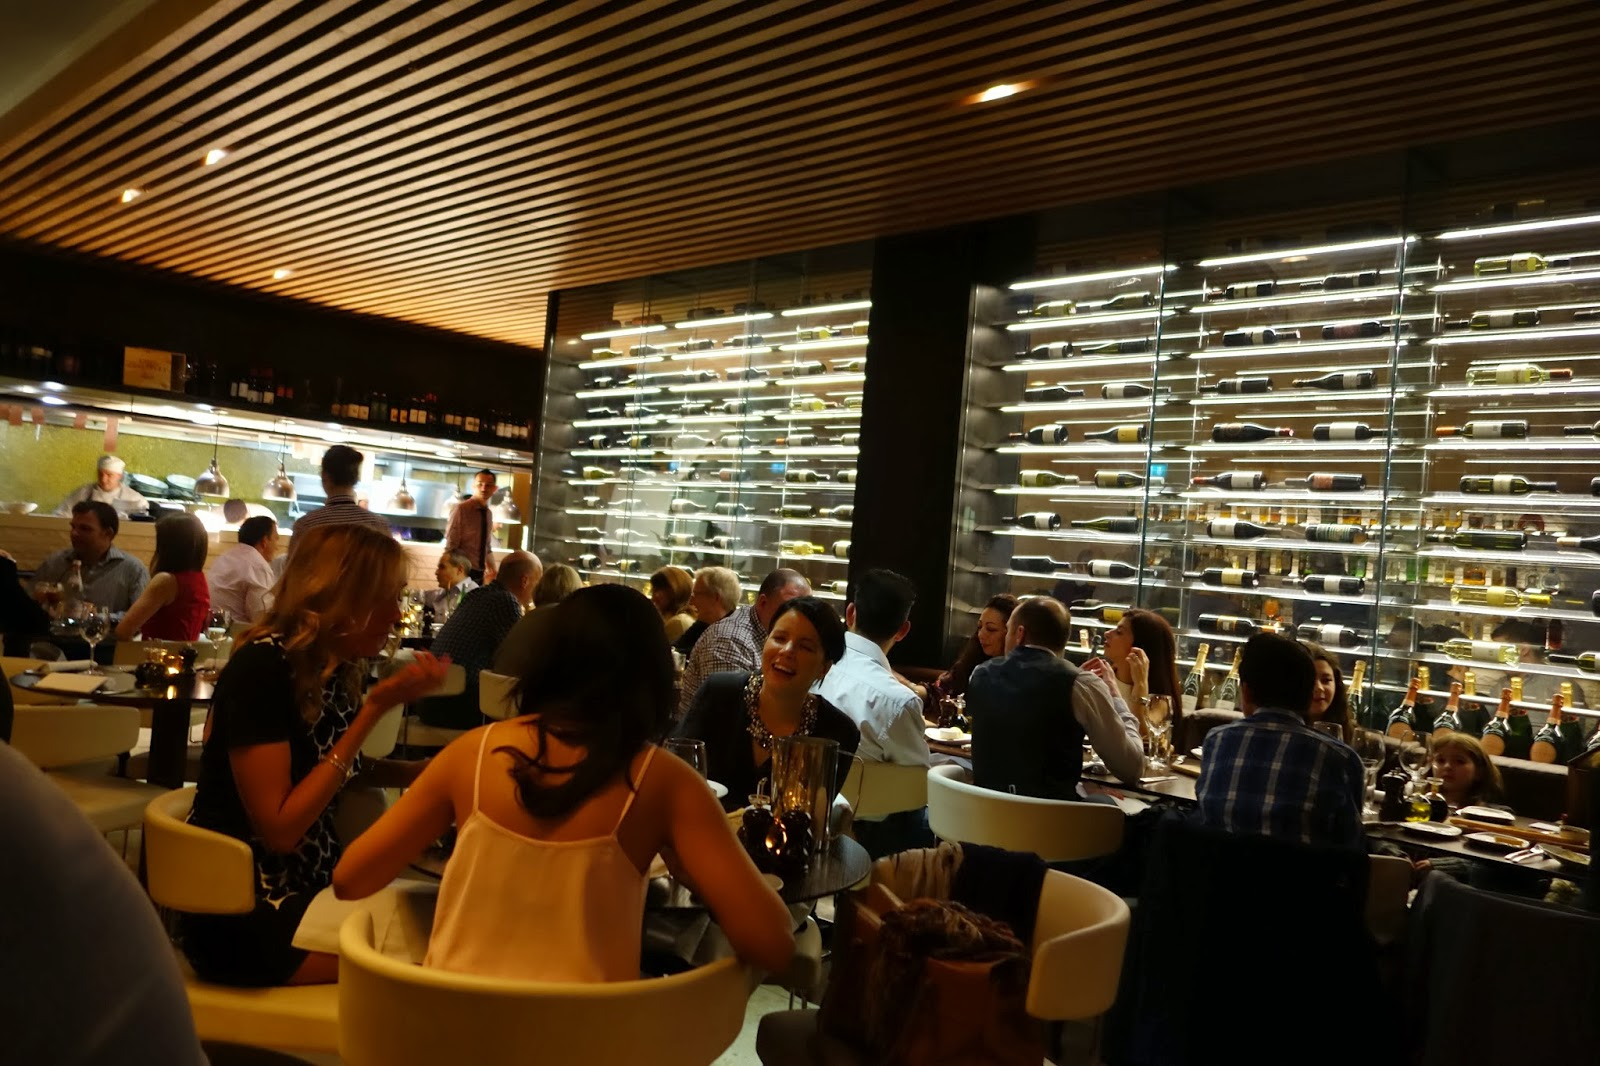 Silverspoon london a luxury lifestyle and travel blog - Cucina restaurant london ...